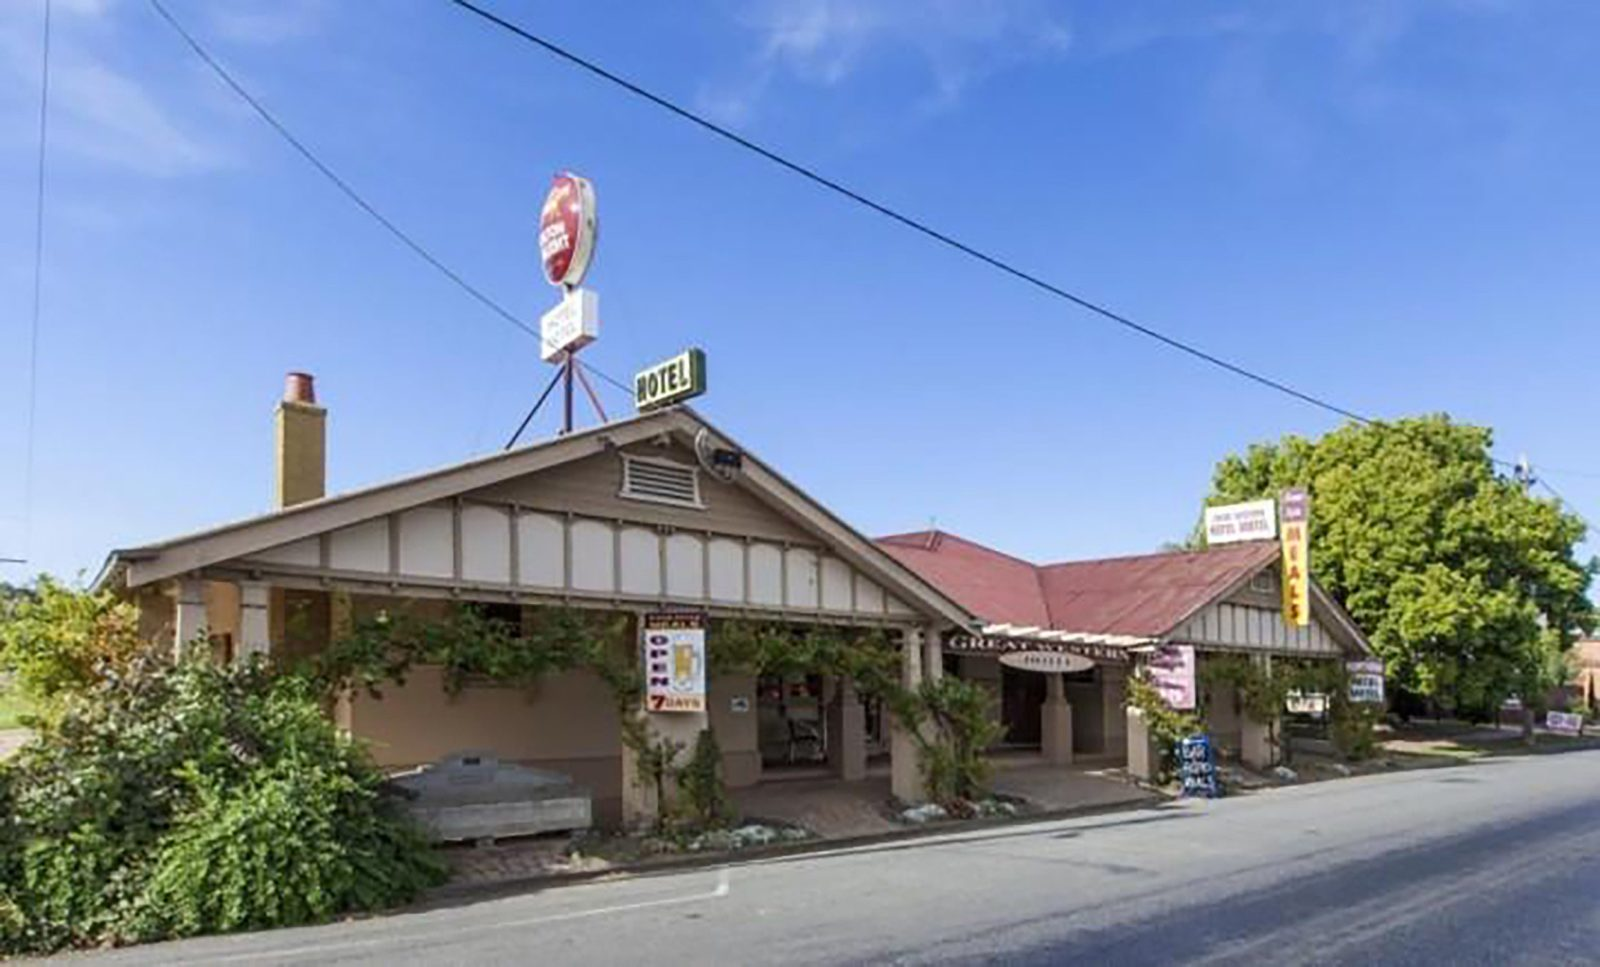 Situated at the foothills of the Grampians, the Great Western Hotel.